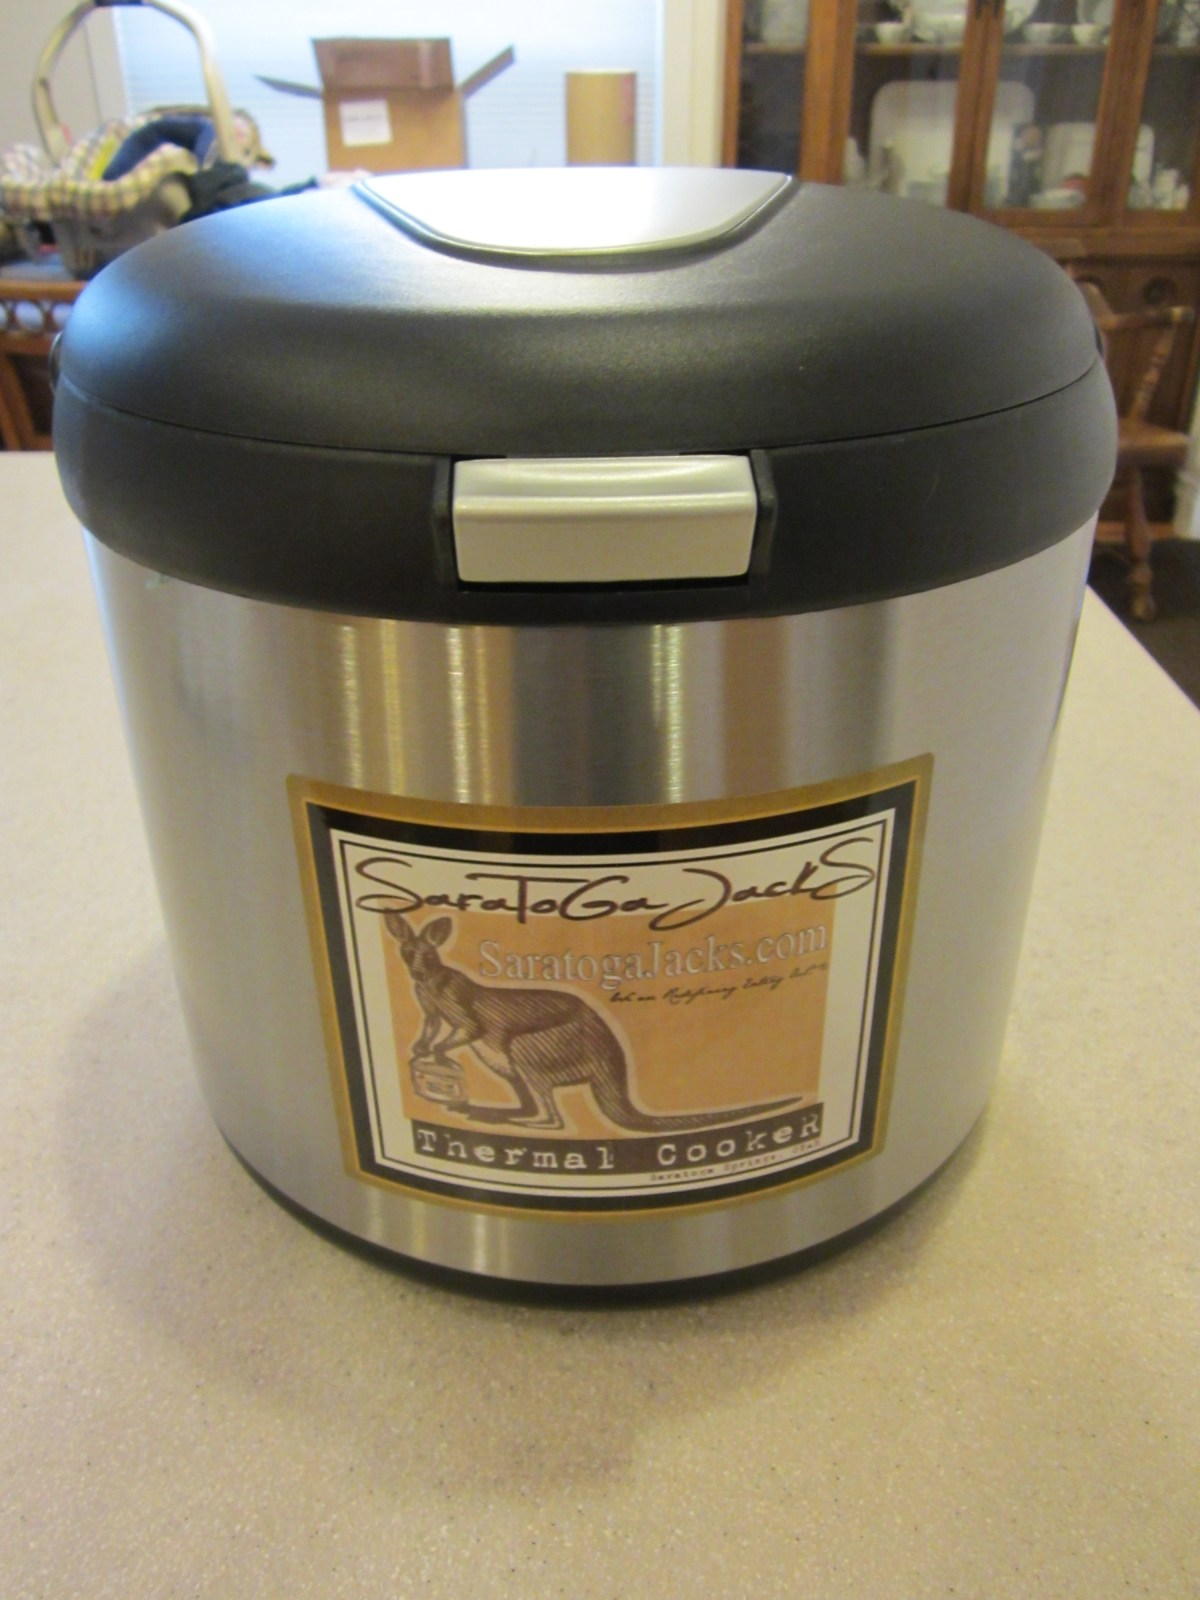 Review – Saratoga Jacks Thermal Cooker